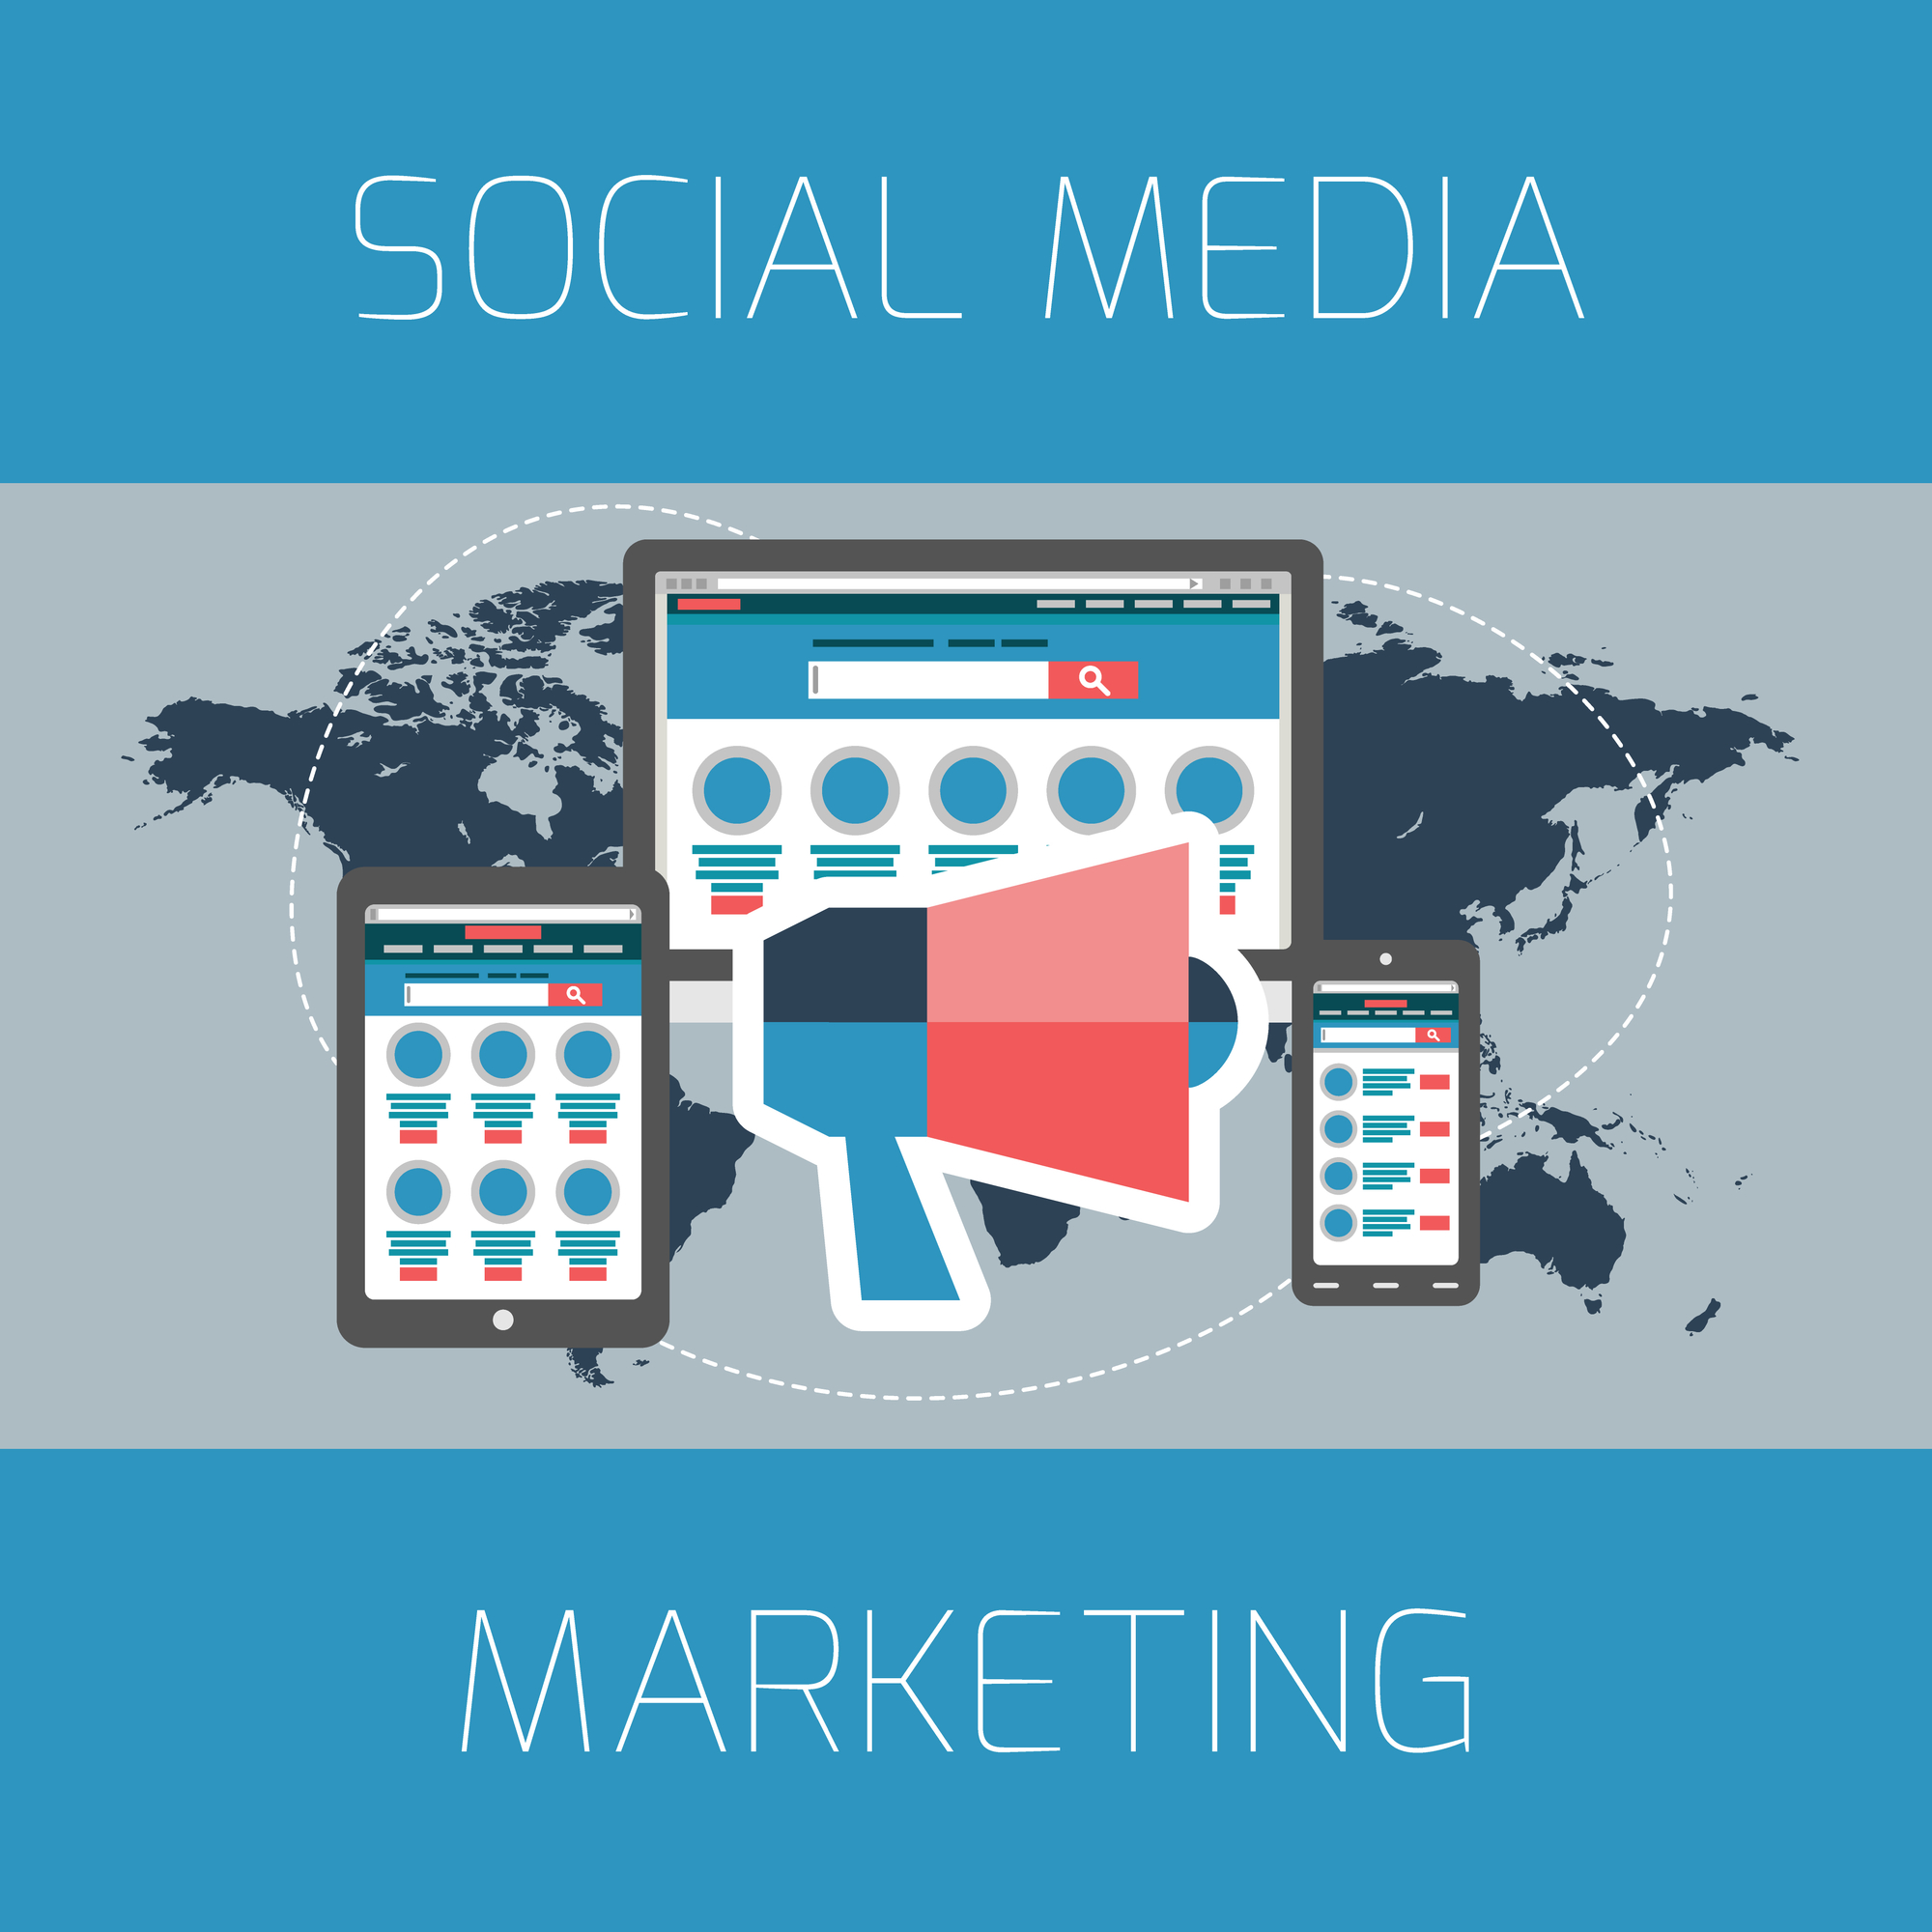 Social Media Marketing graphic over map of the world